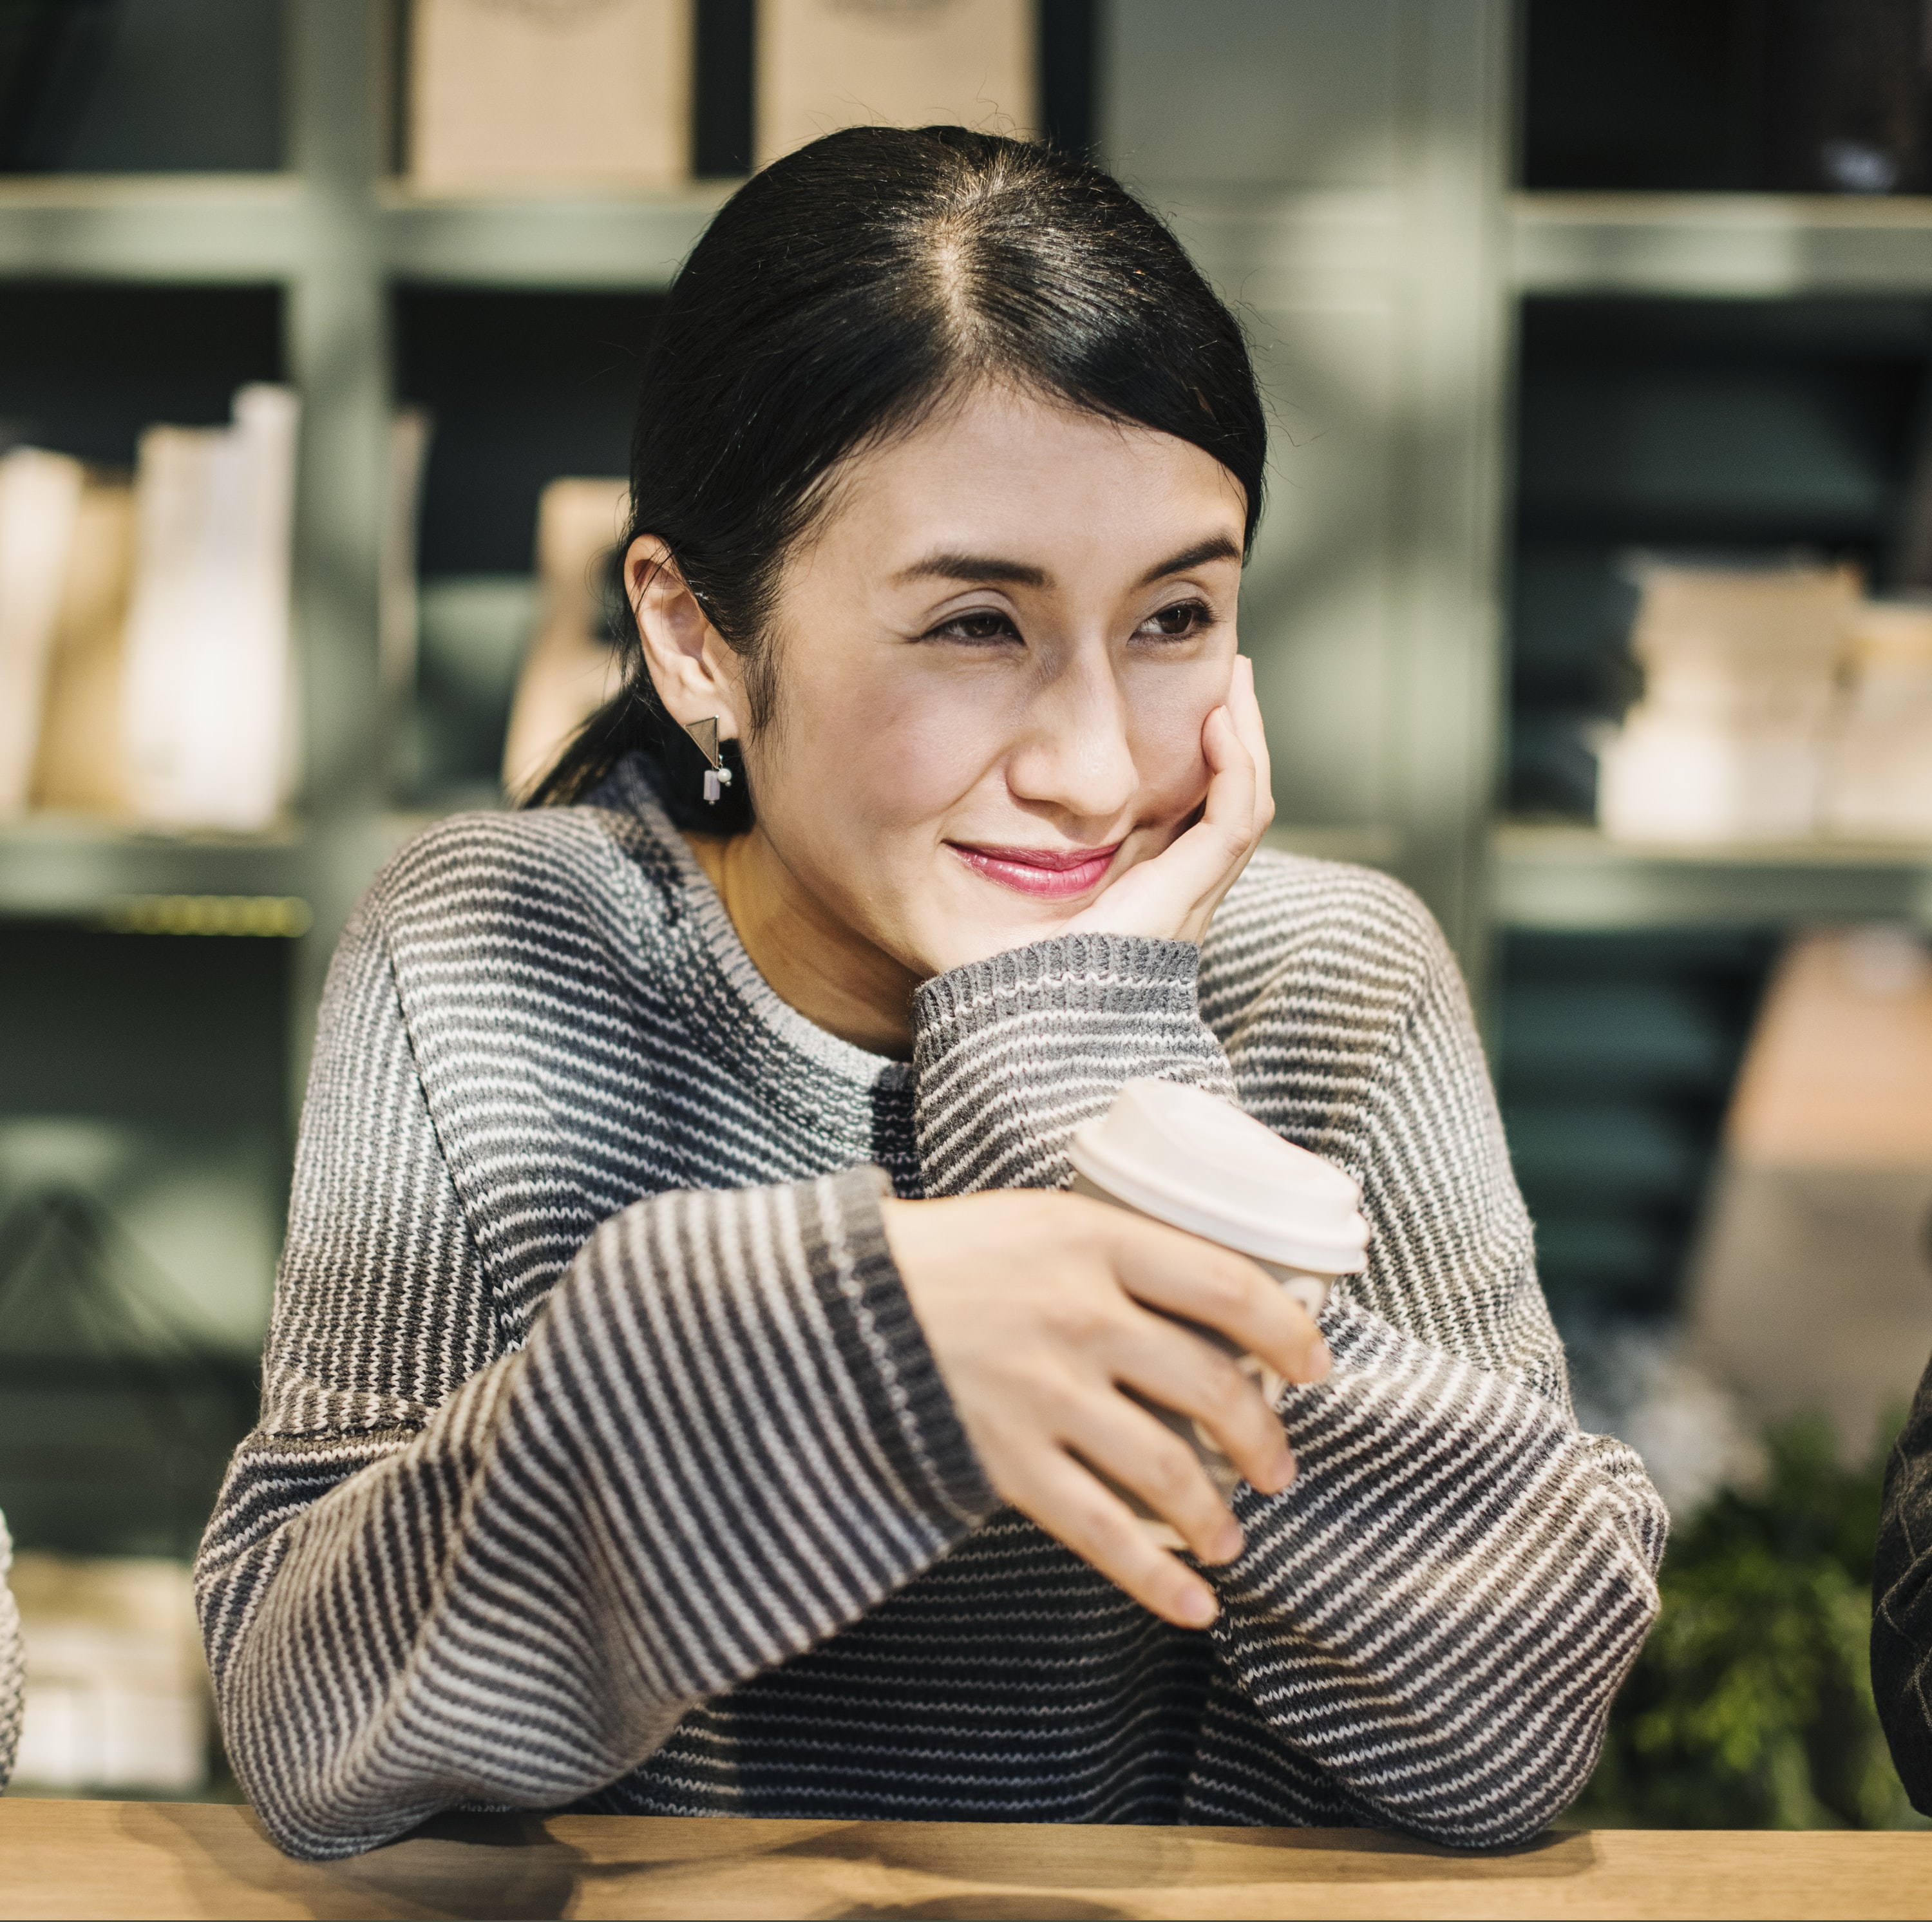 woman holding white disposable cup smiling